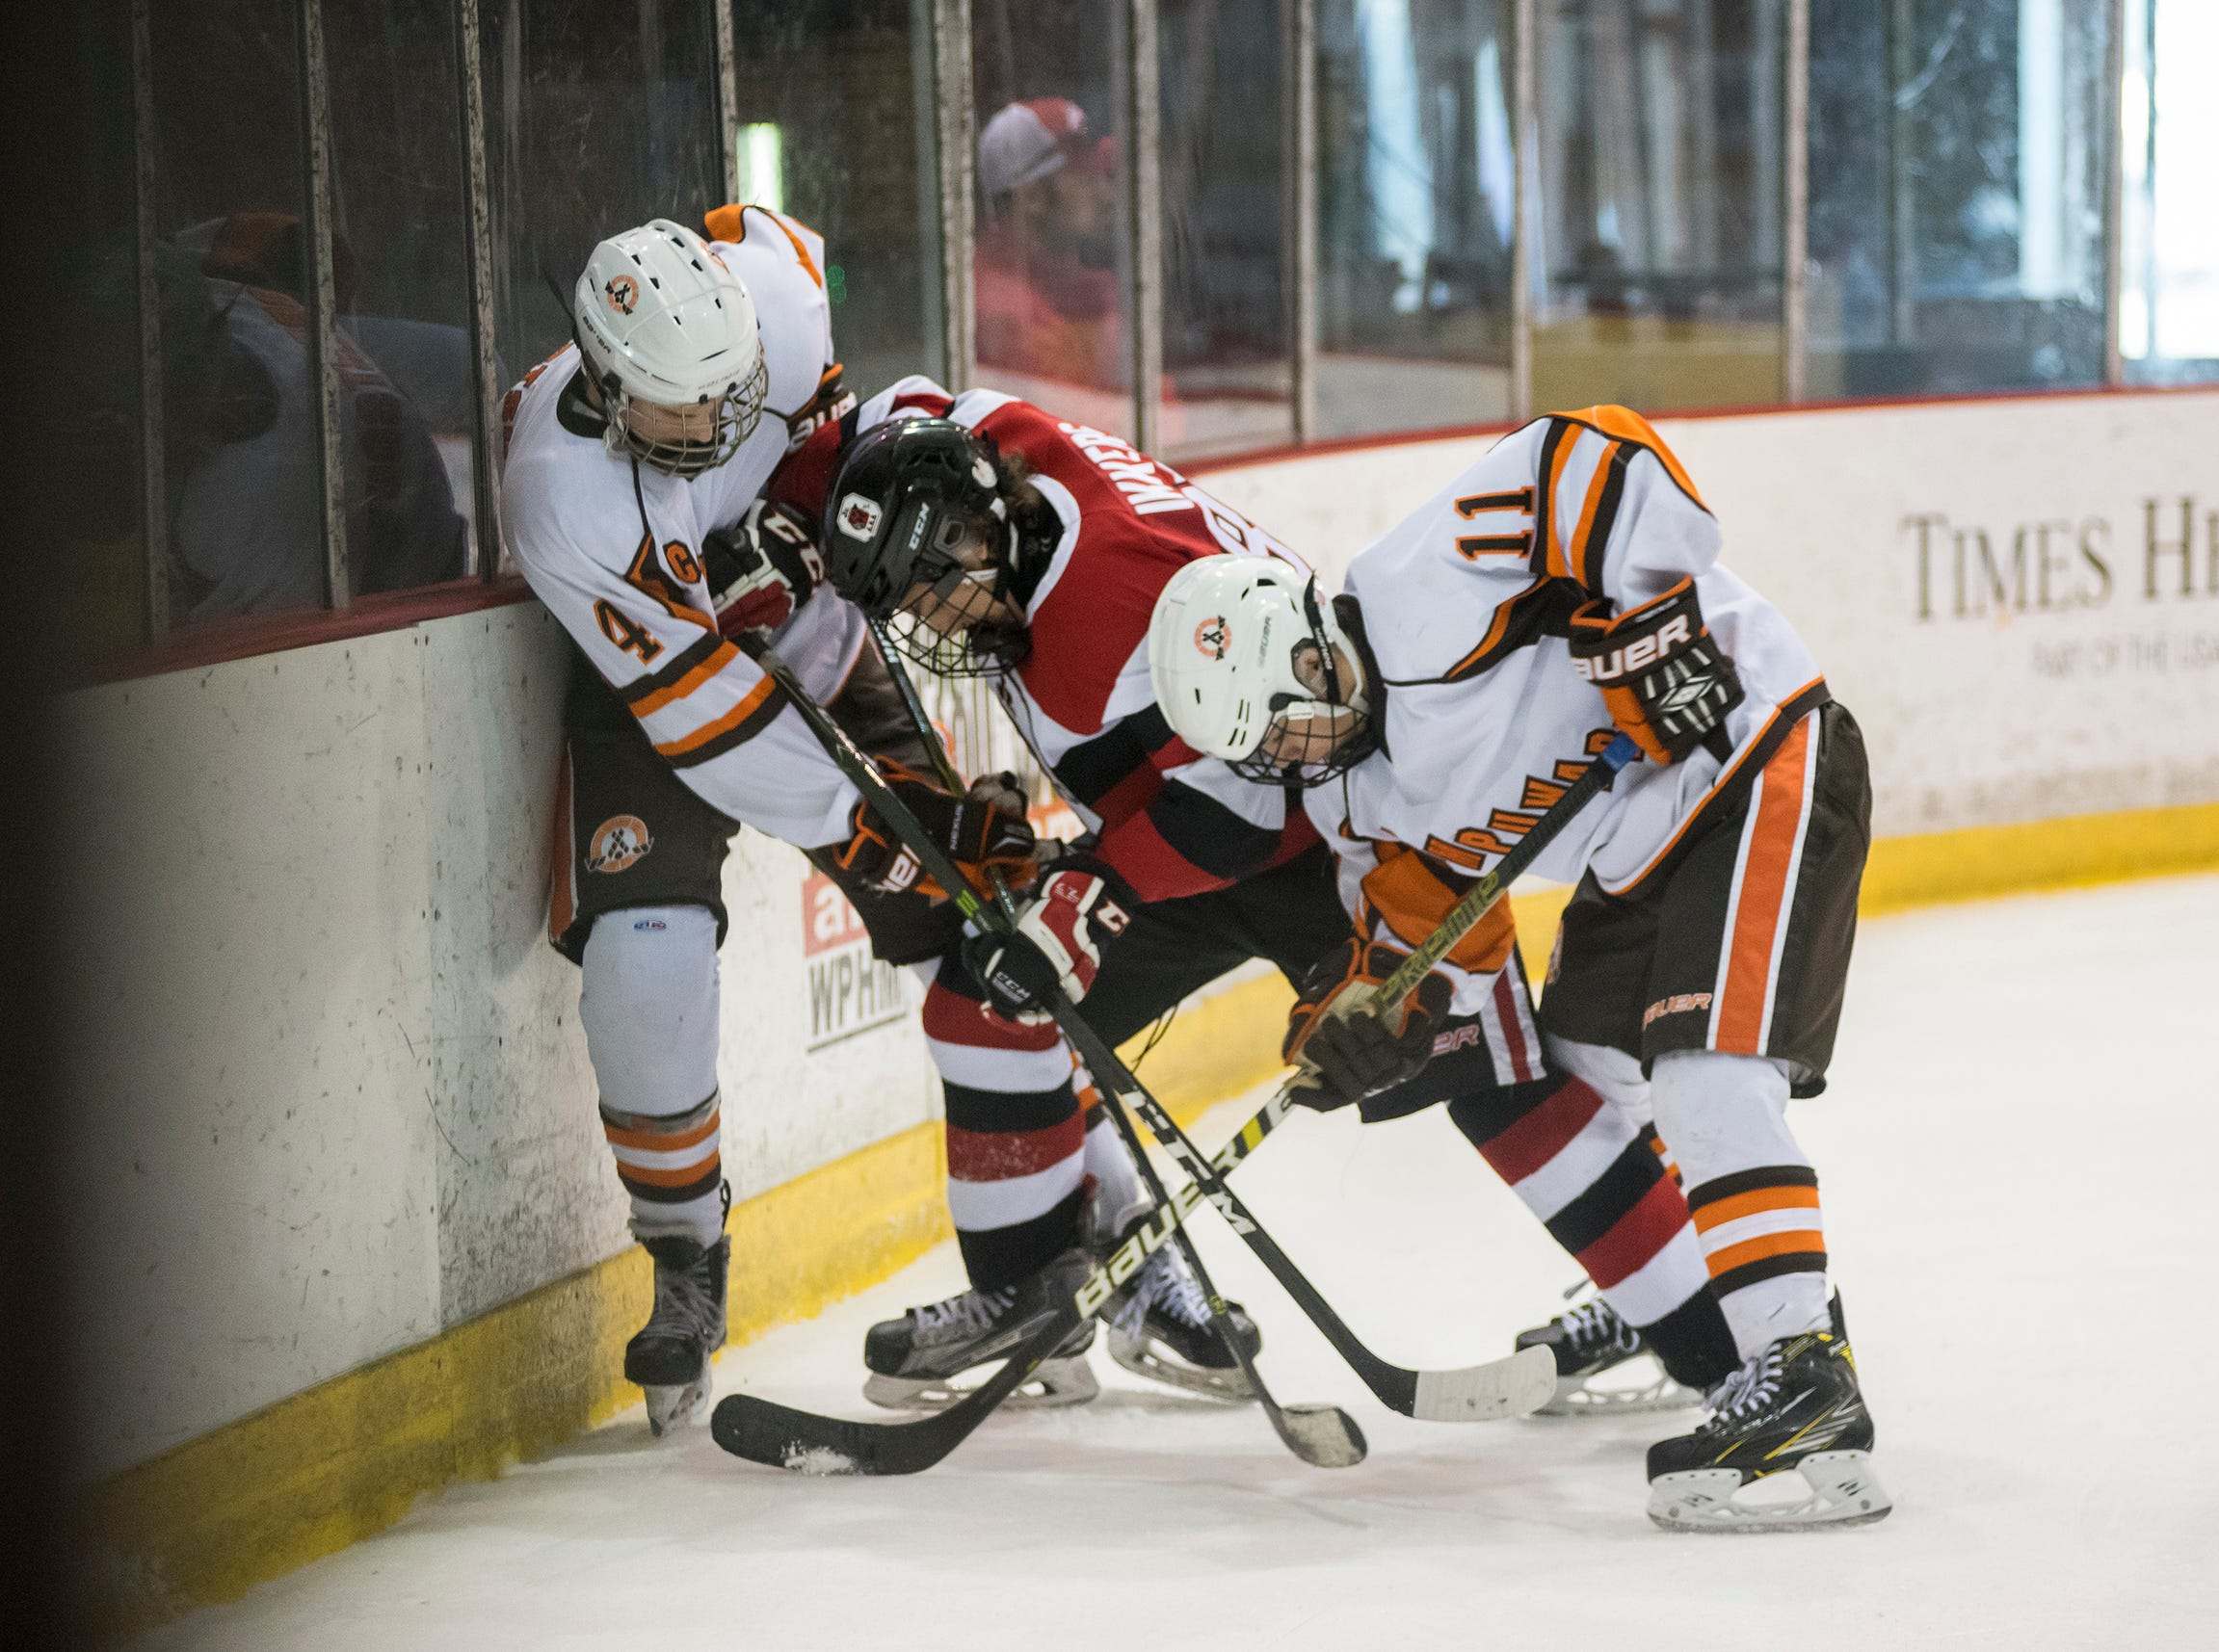 Detroit Compuware defenseman Brian Robertson (4), forward Brent Litchard (11) and Ottawa Jr. 67s defenseman Ryan Ikkers fight for the puck during their BAAA-B Silver Stick Finals match Saturday, Jan. 5, 2019 at McMorran Arena.